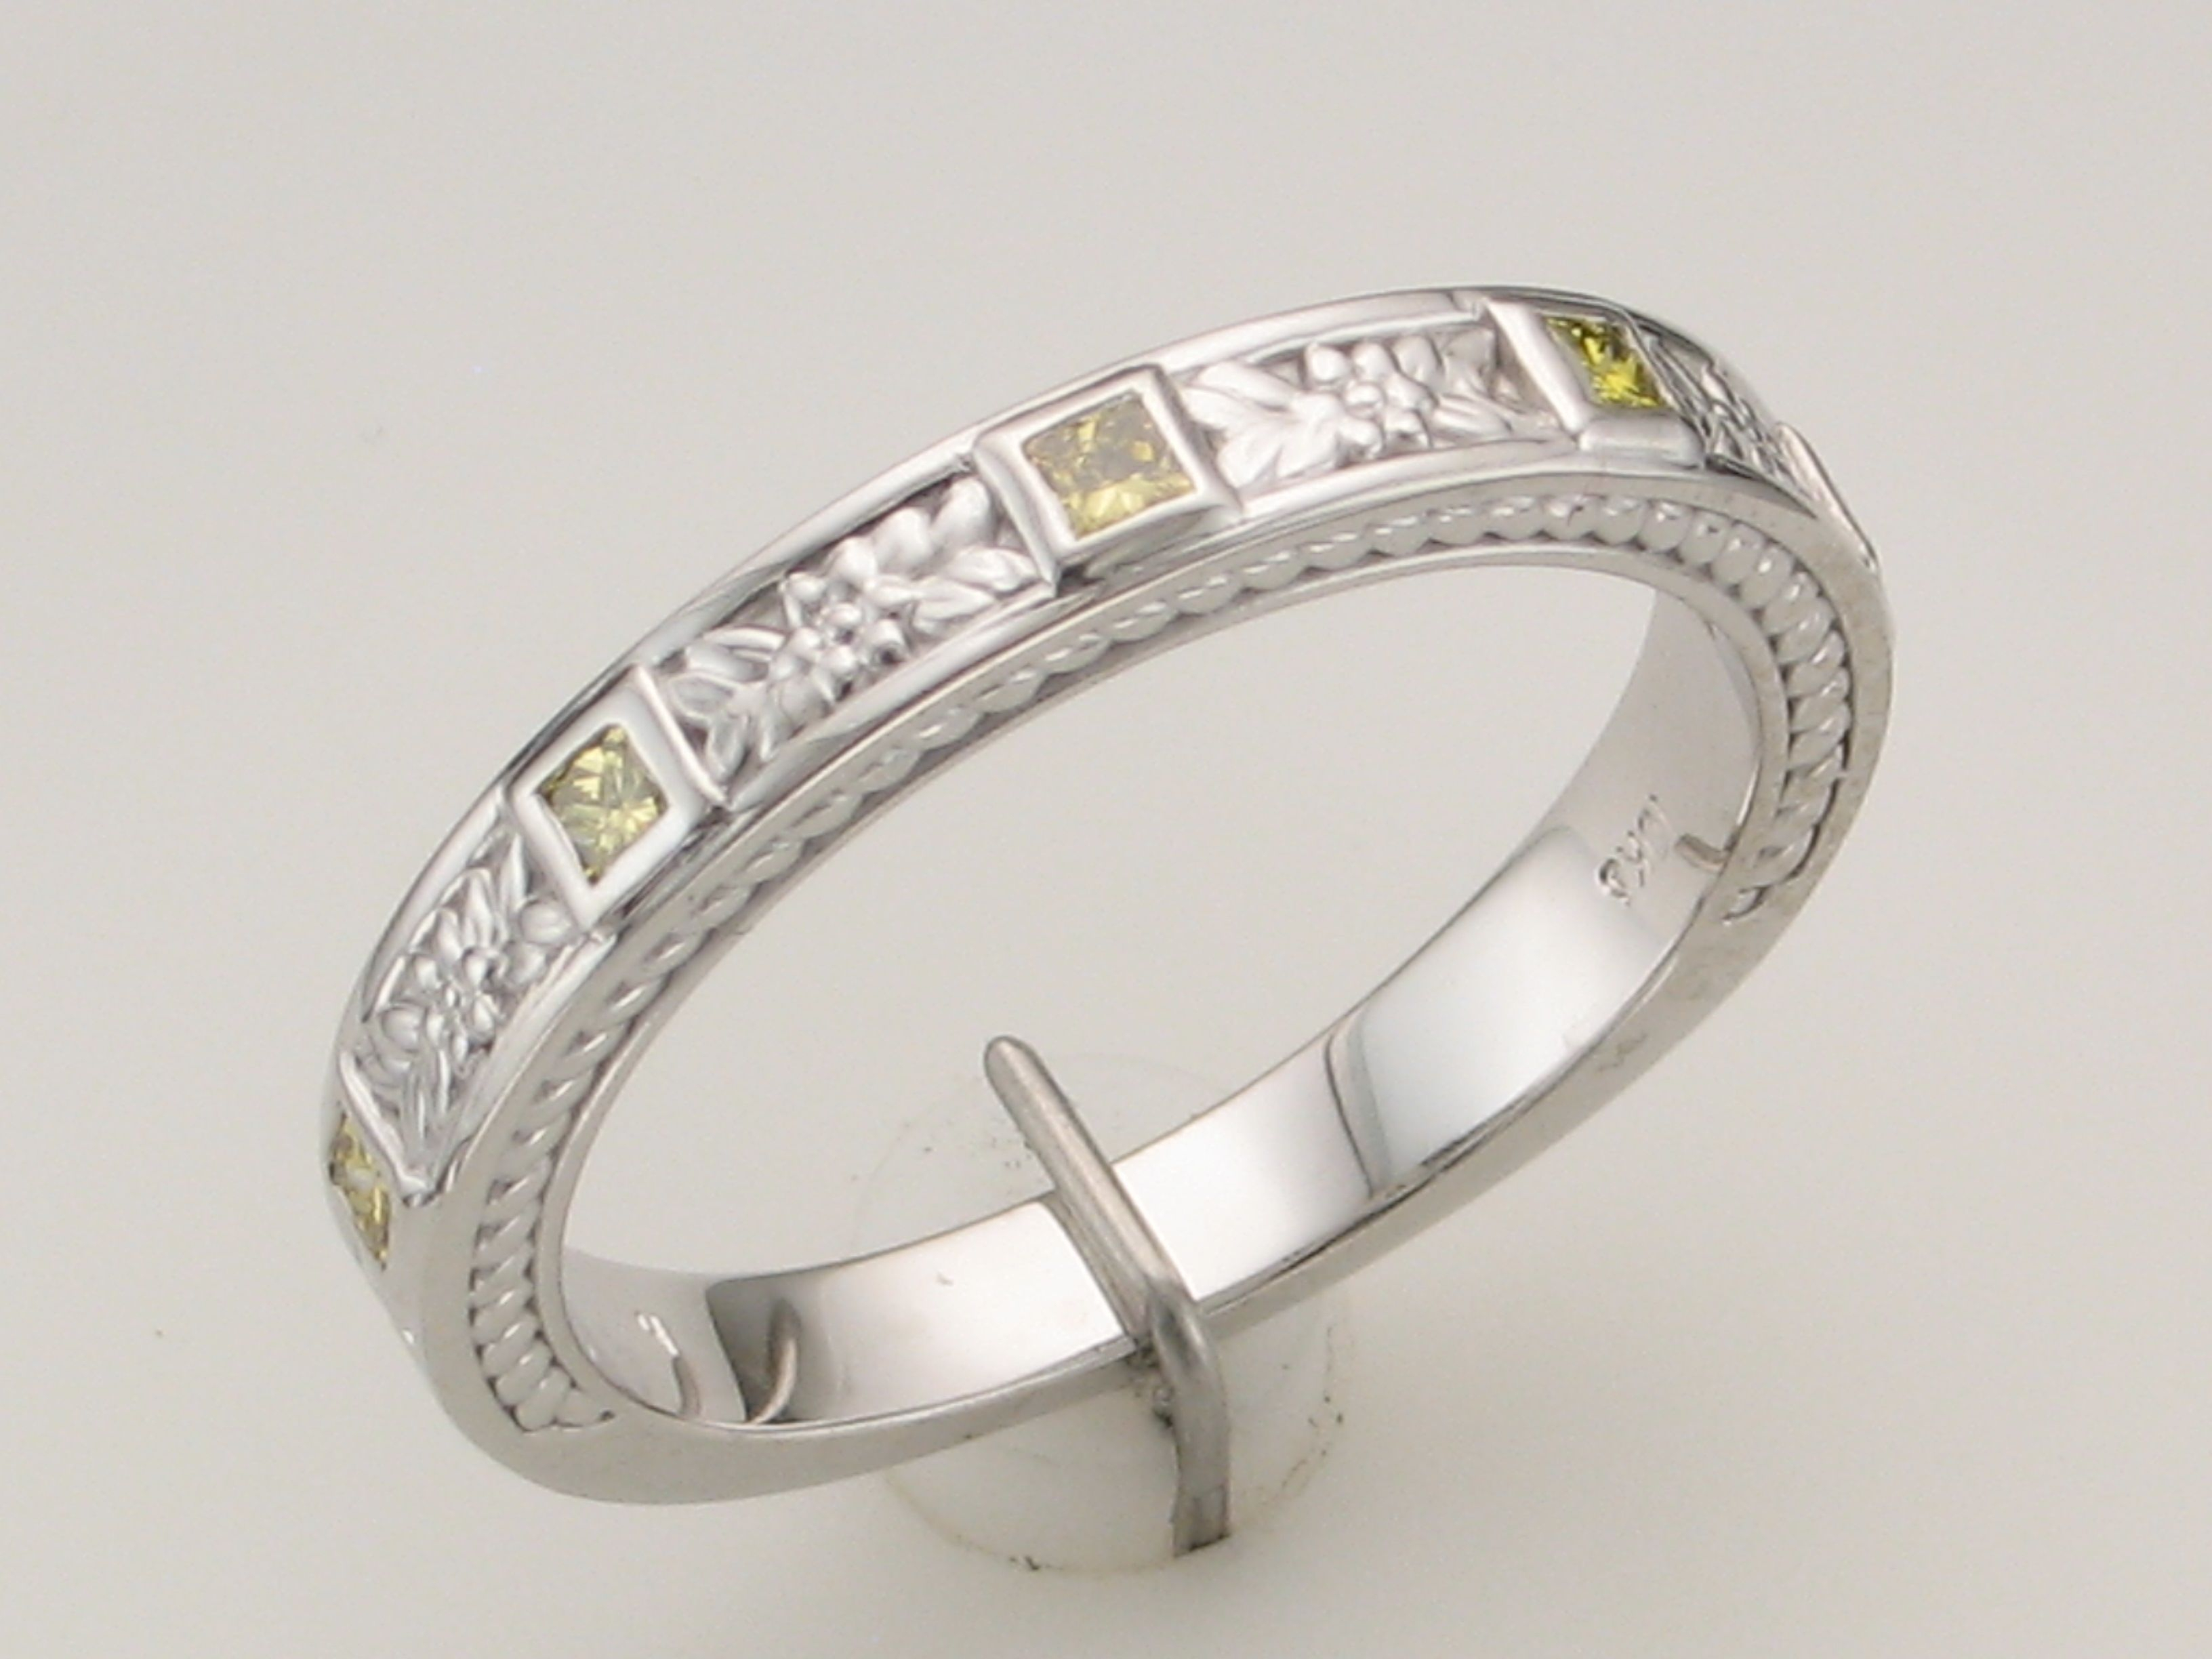 Purple Mountain Jewelry Custom Designs Fancy Yellow #diamond Throughout Most Recently Released Diamond Linear Anniversary Bands In White Gold (View 13 of 25)